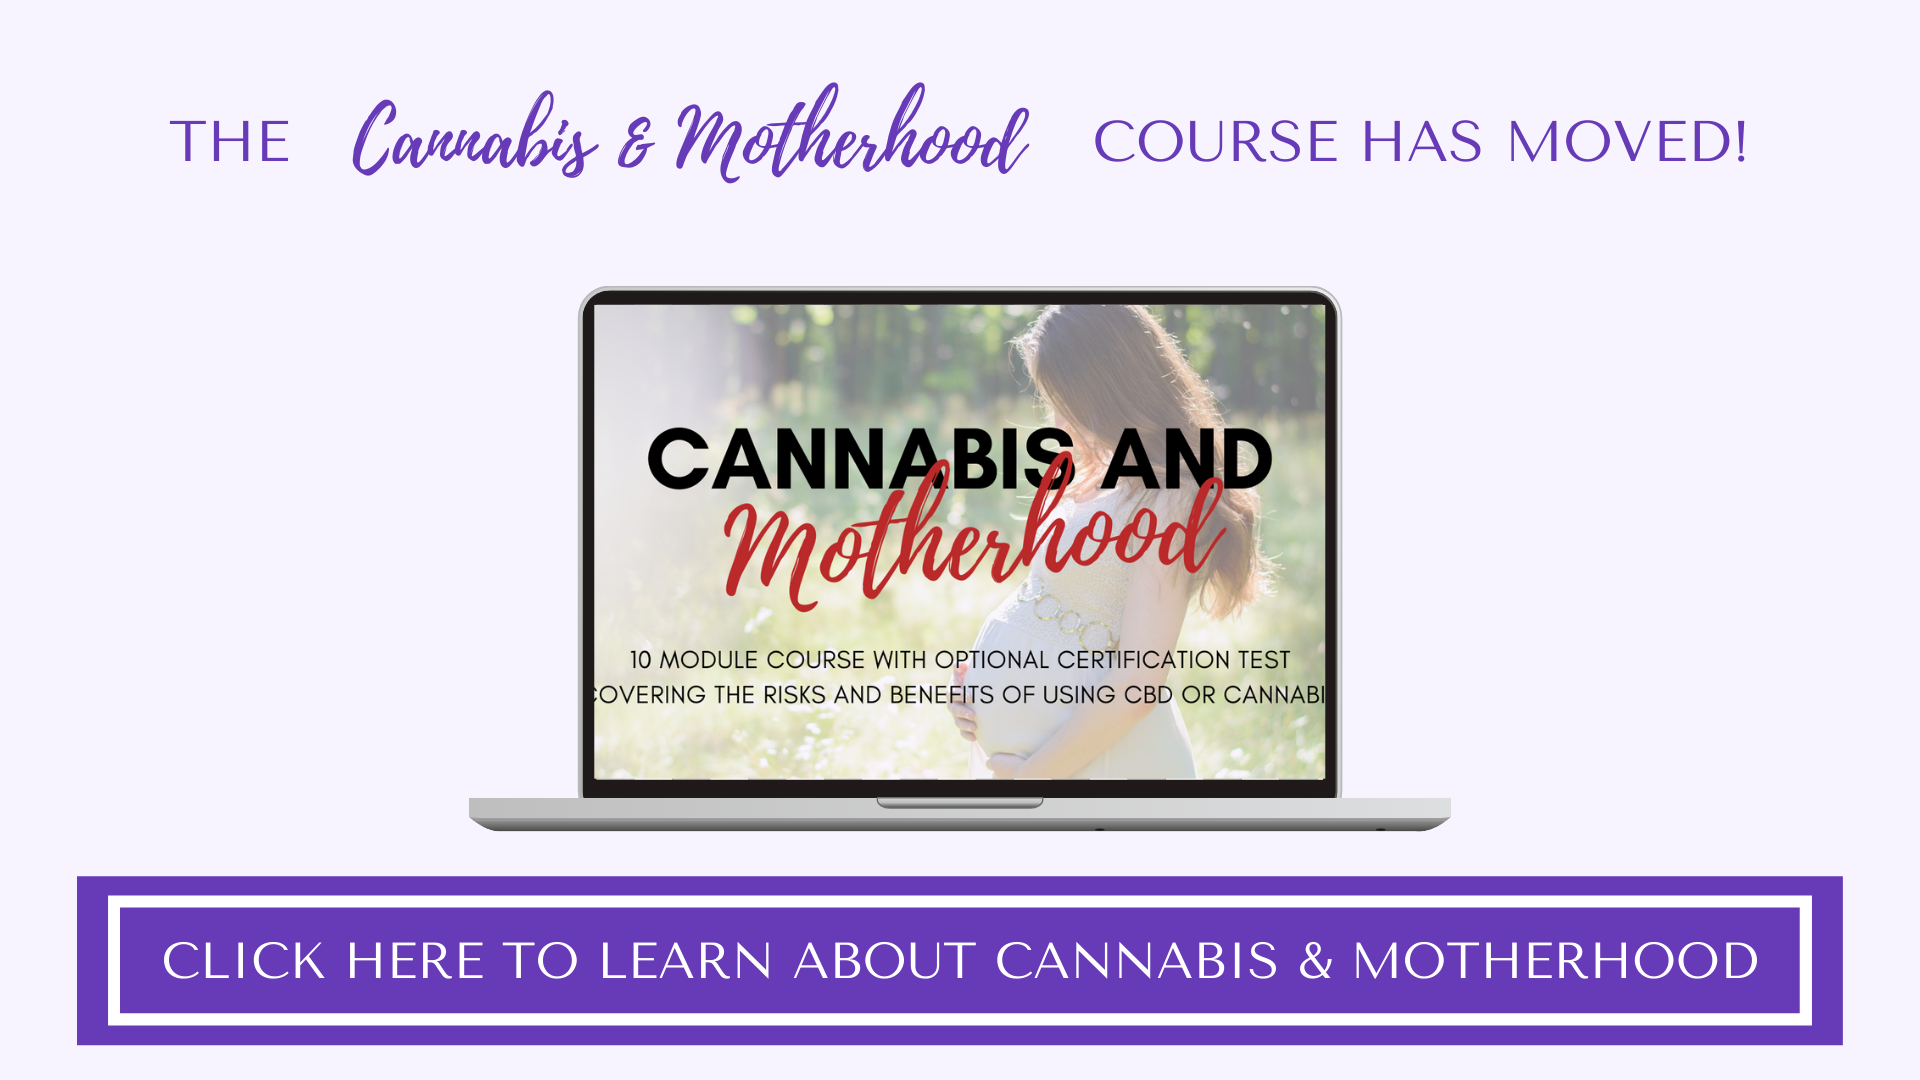 Cannabis and Motherhood Course has Moved